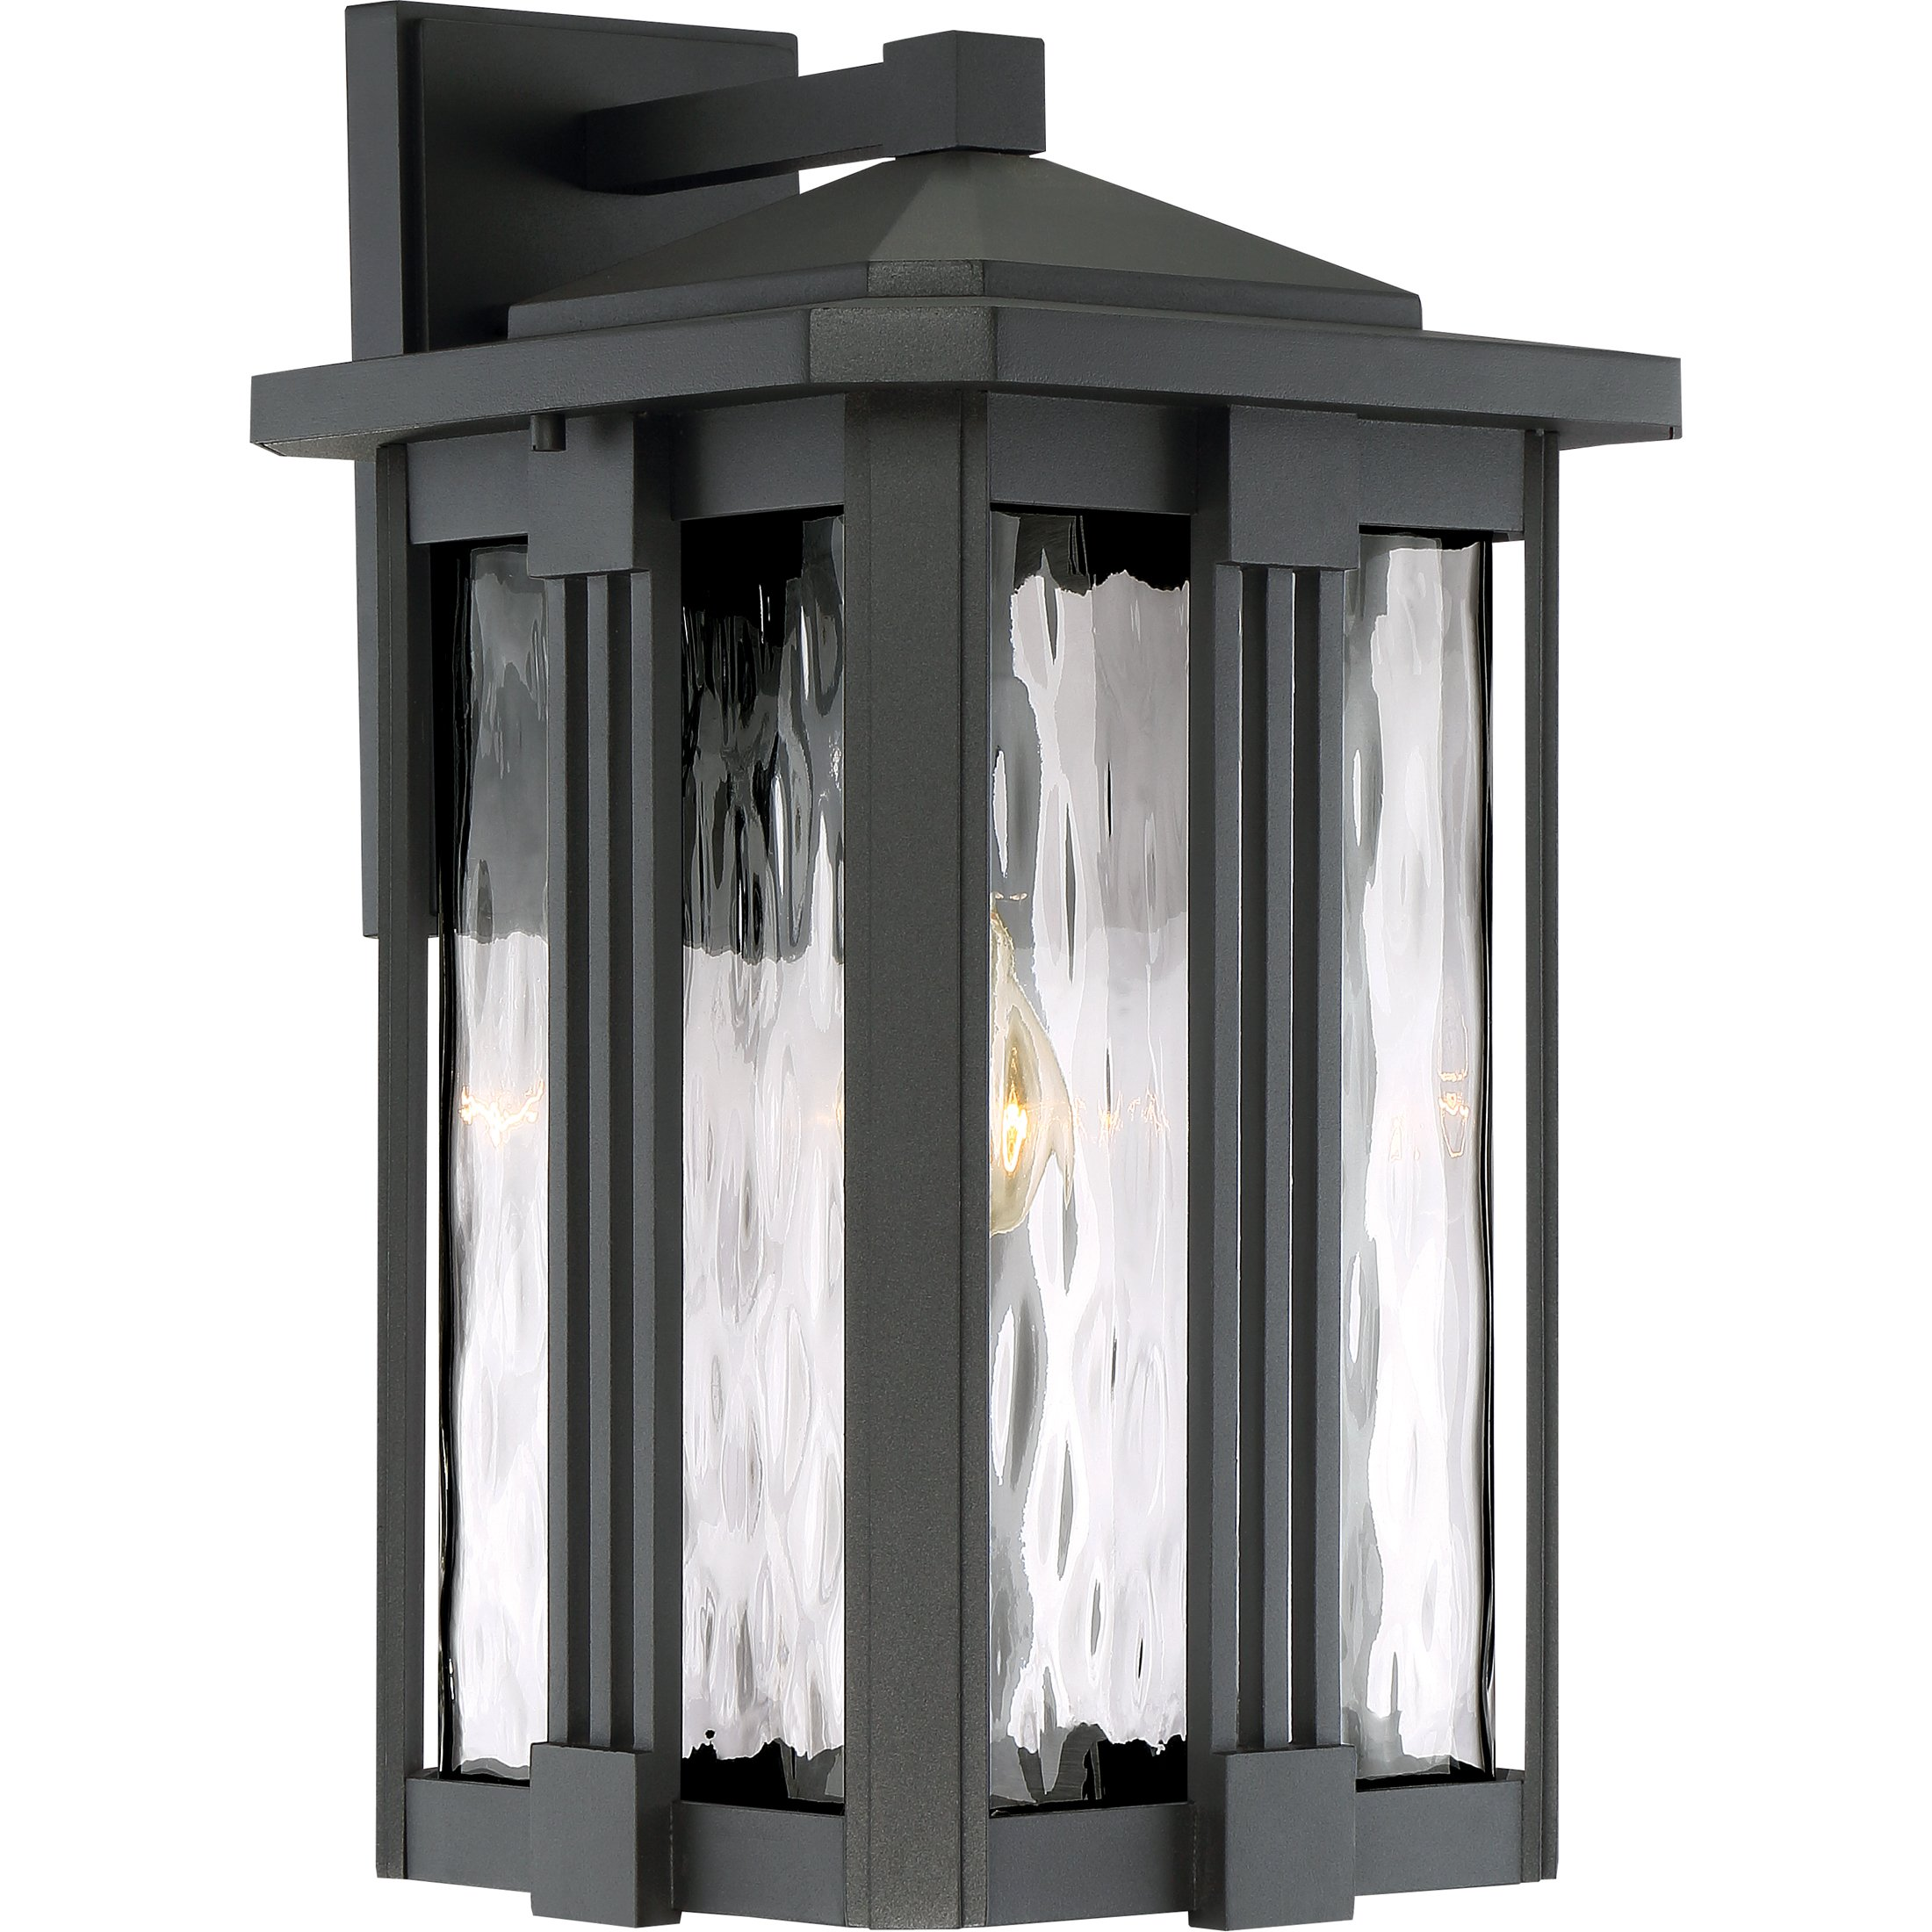 Quoizel One Light Outdoor Wall Lantern EVG8411EK, Large, Earth Black by Quoizel